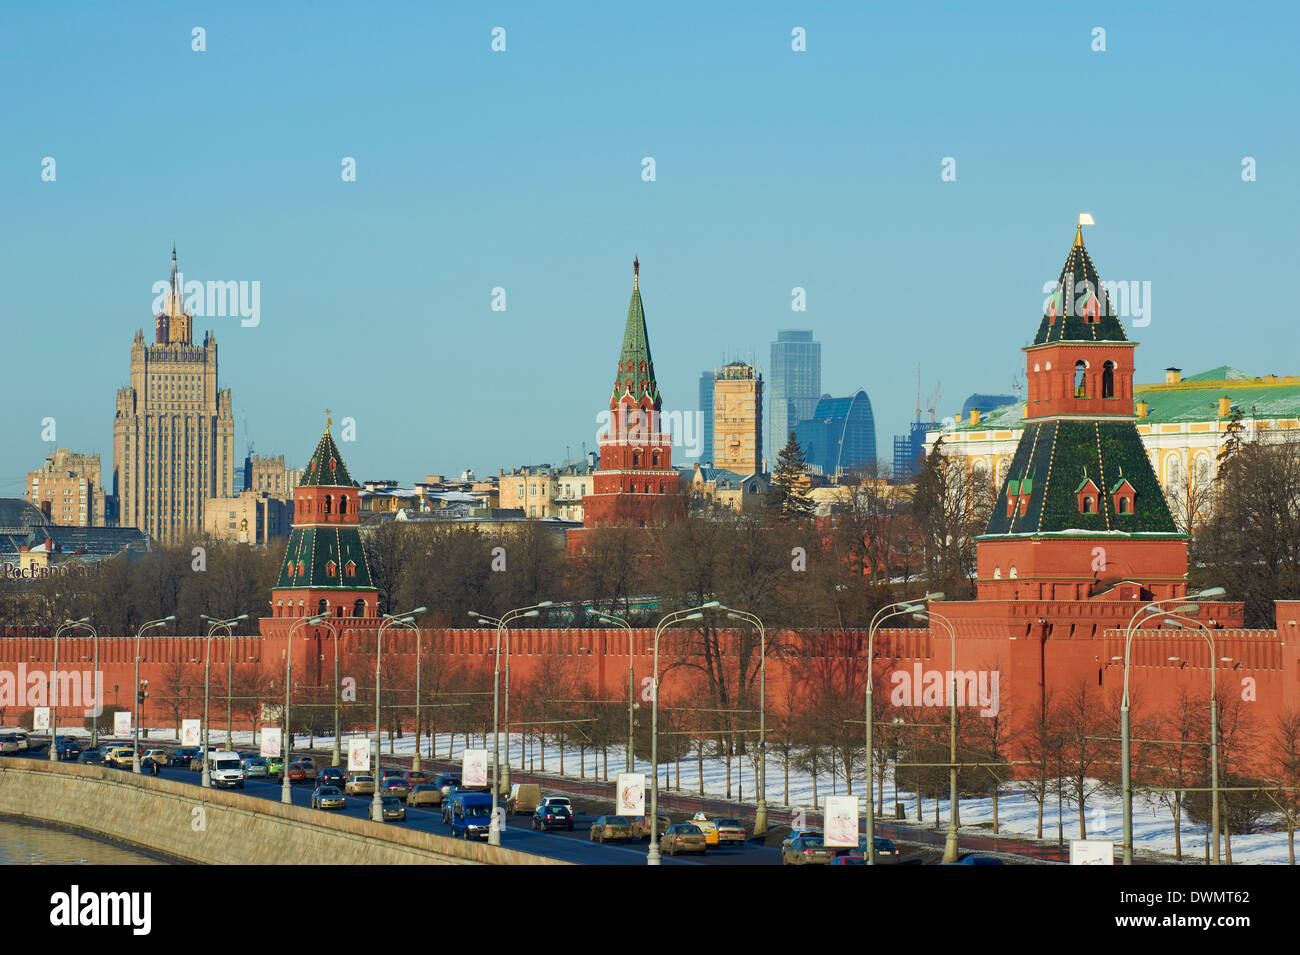 The Kremlin Wall and the business center, Moscow, Russia, Europe - Stock Image